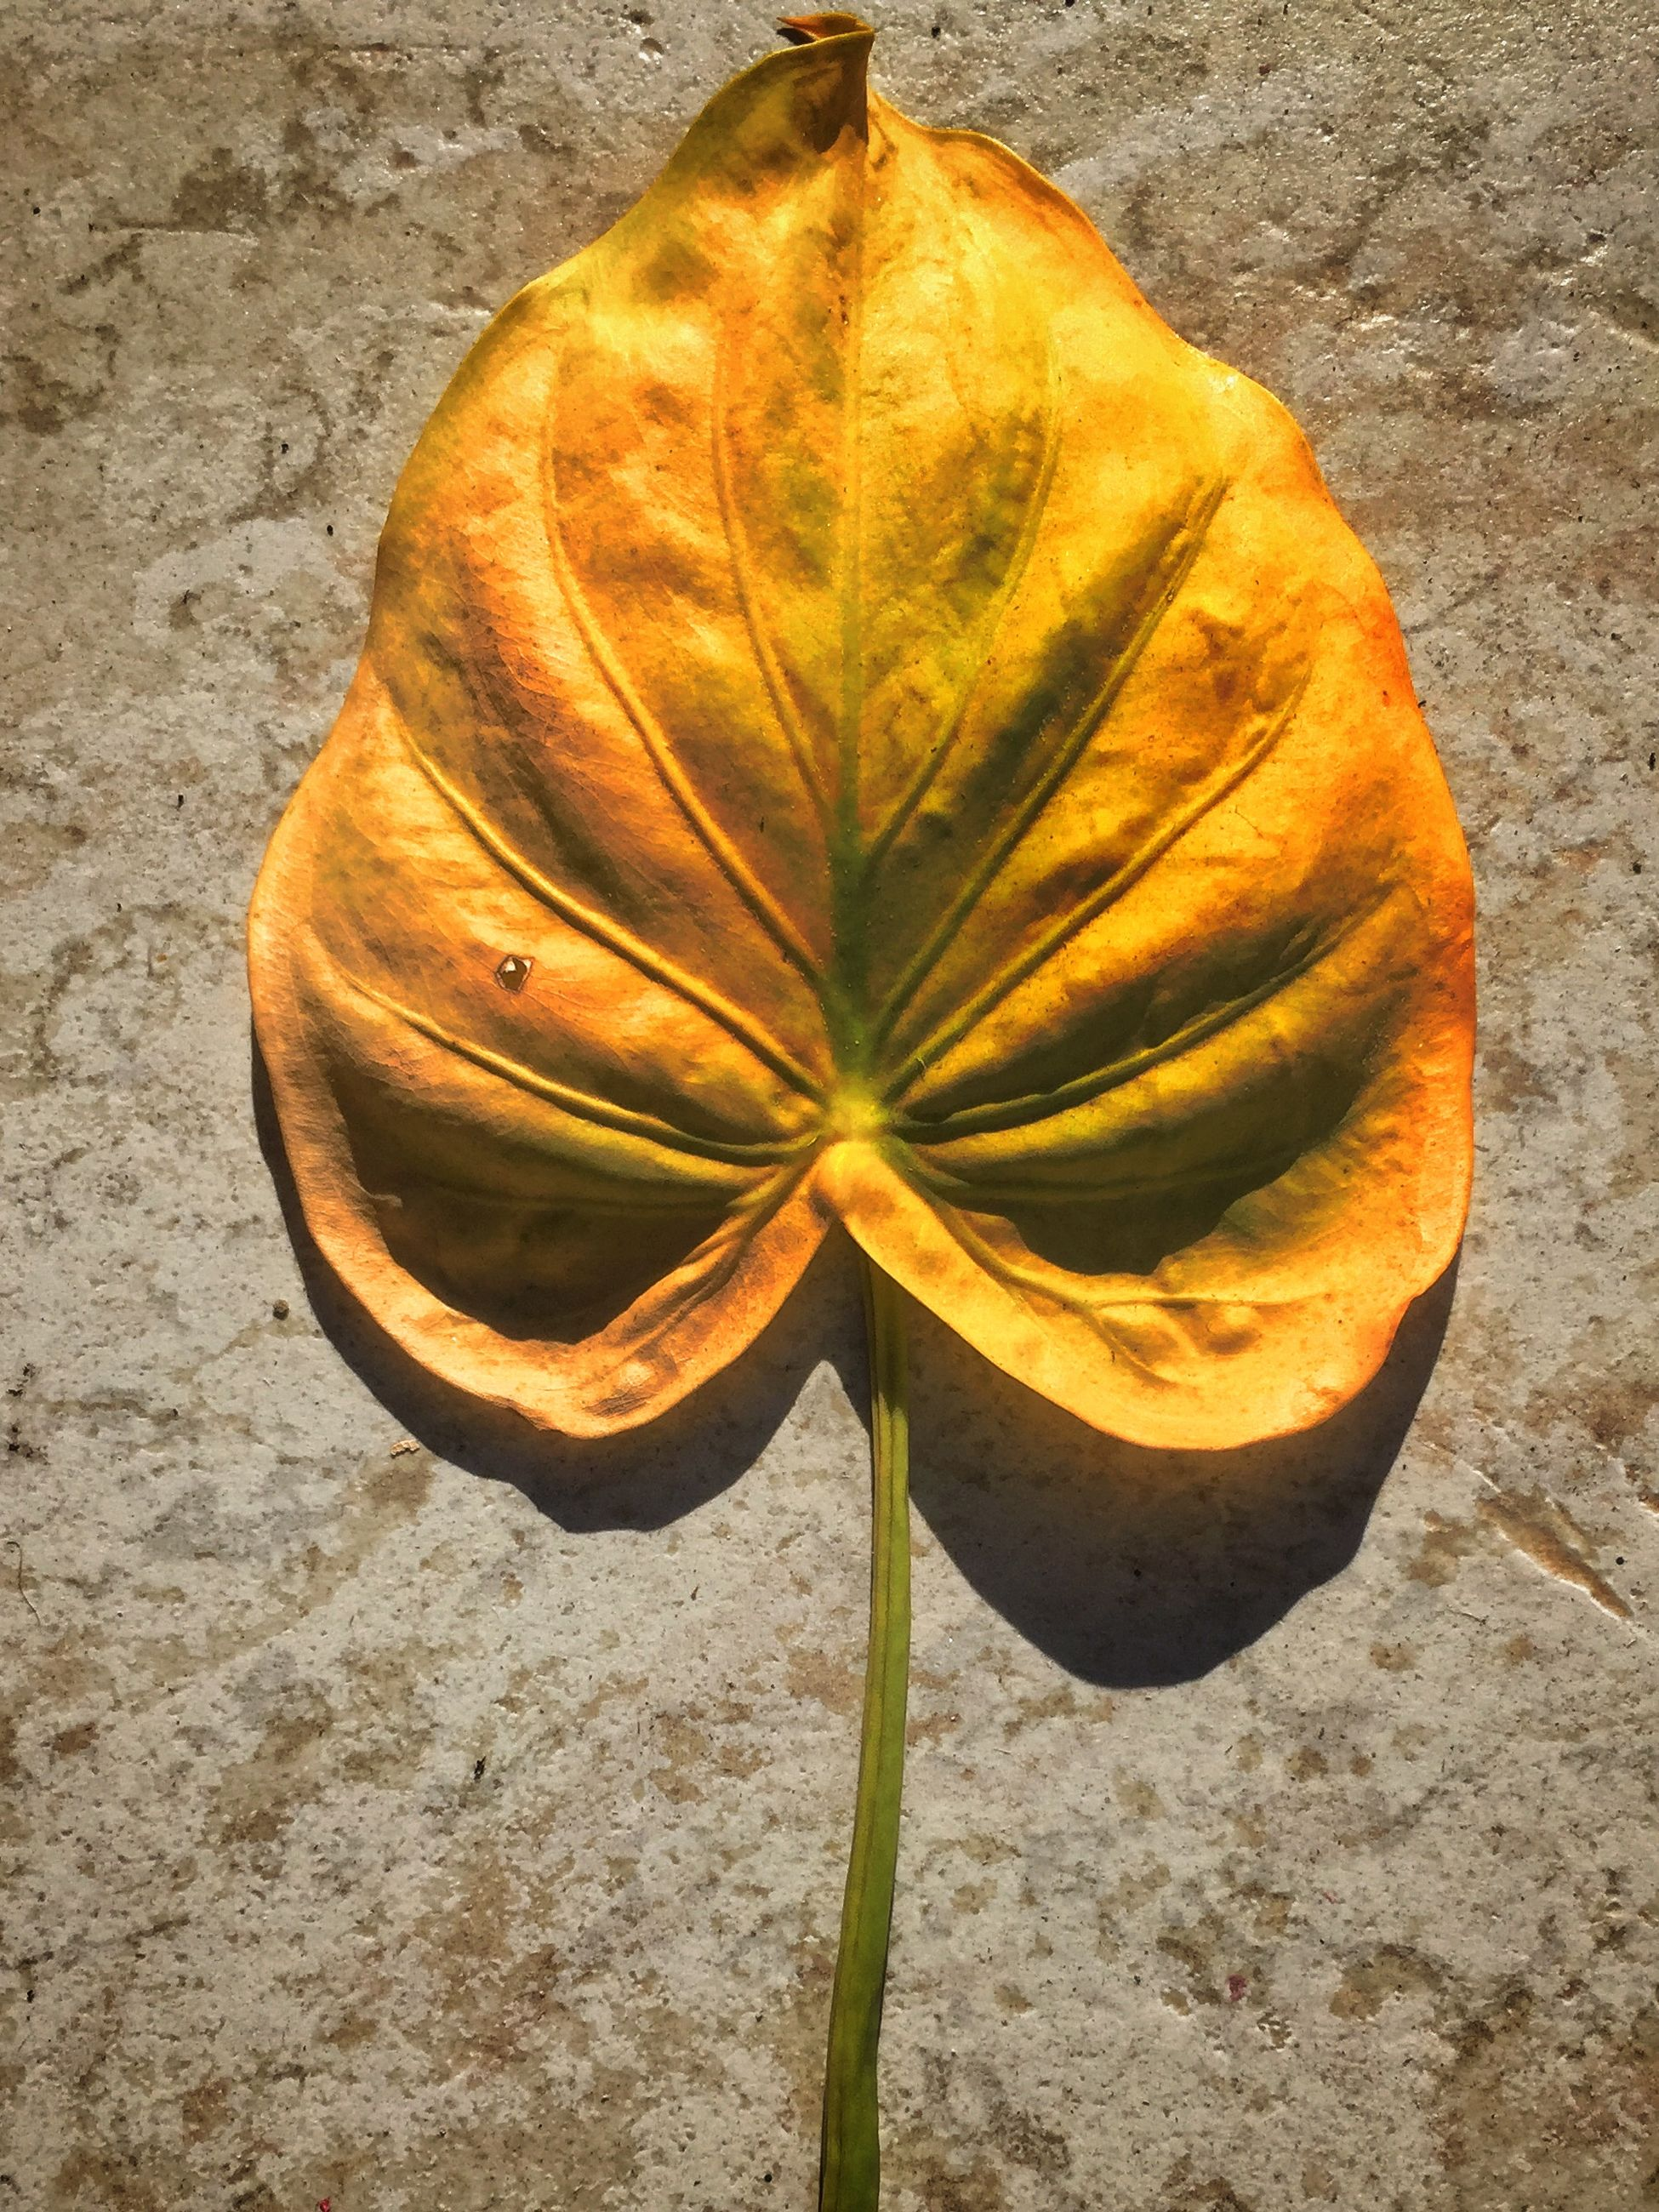 fragility, high angle view, flower, close-up, nature, leaf, petal, dry, yellow, beauty in nature, single flower, natural pattern, flower head, freshness, orange color, ground, directly above, single object, no people, outdoors